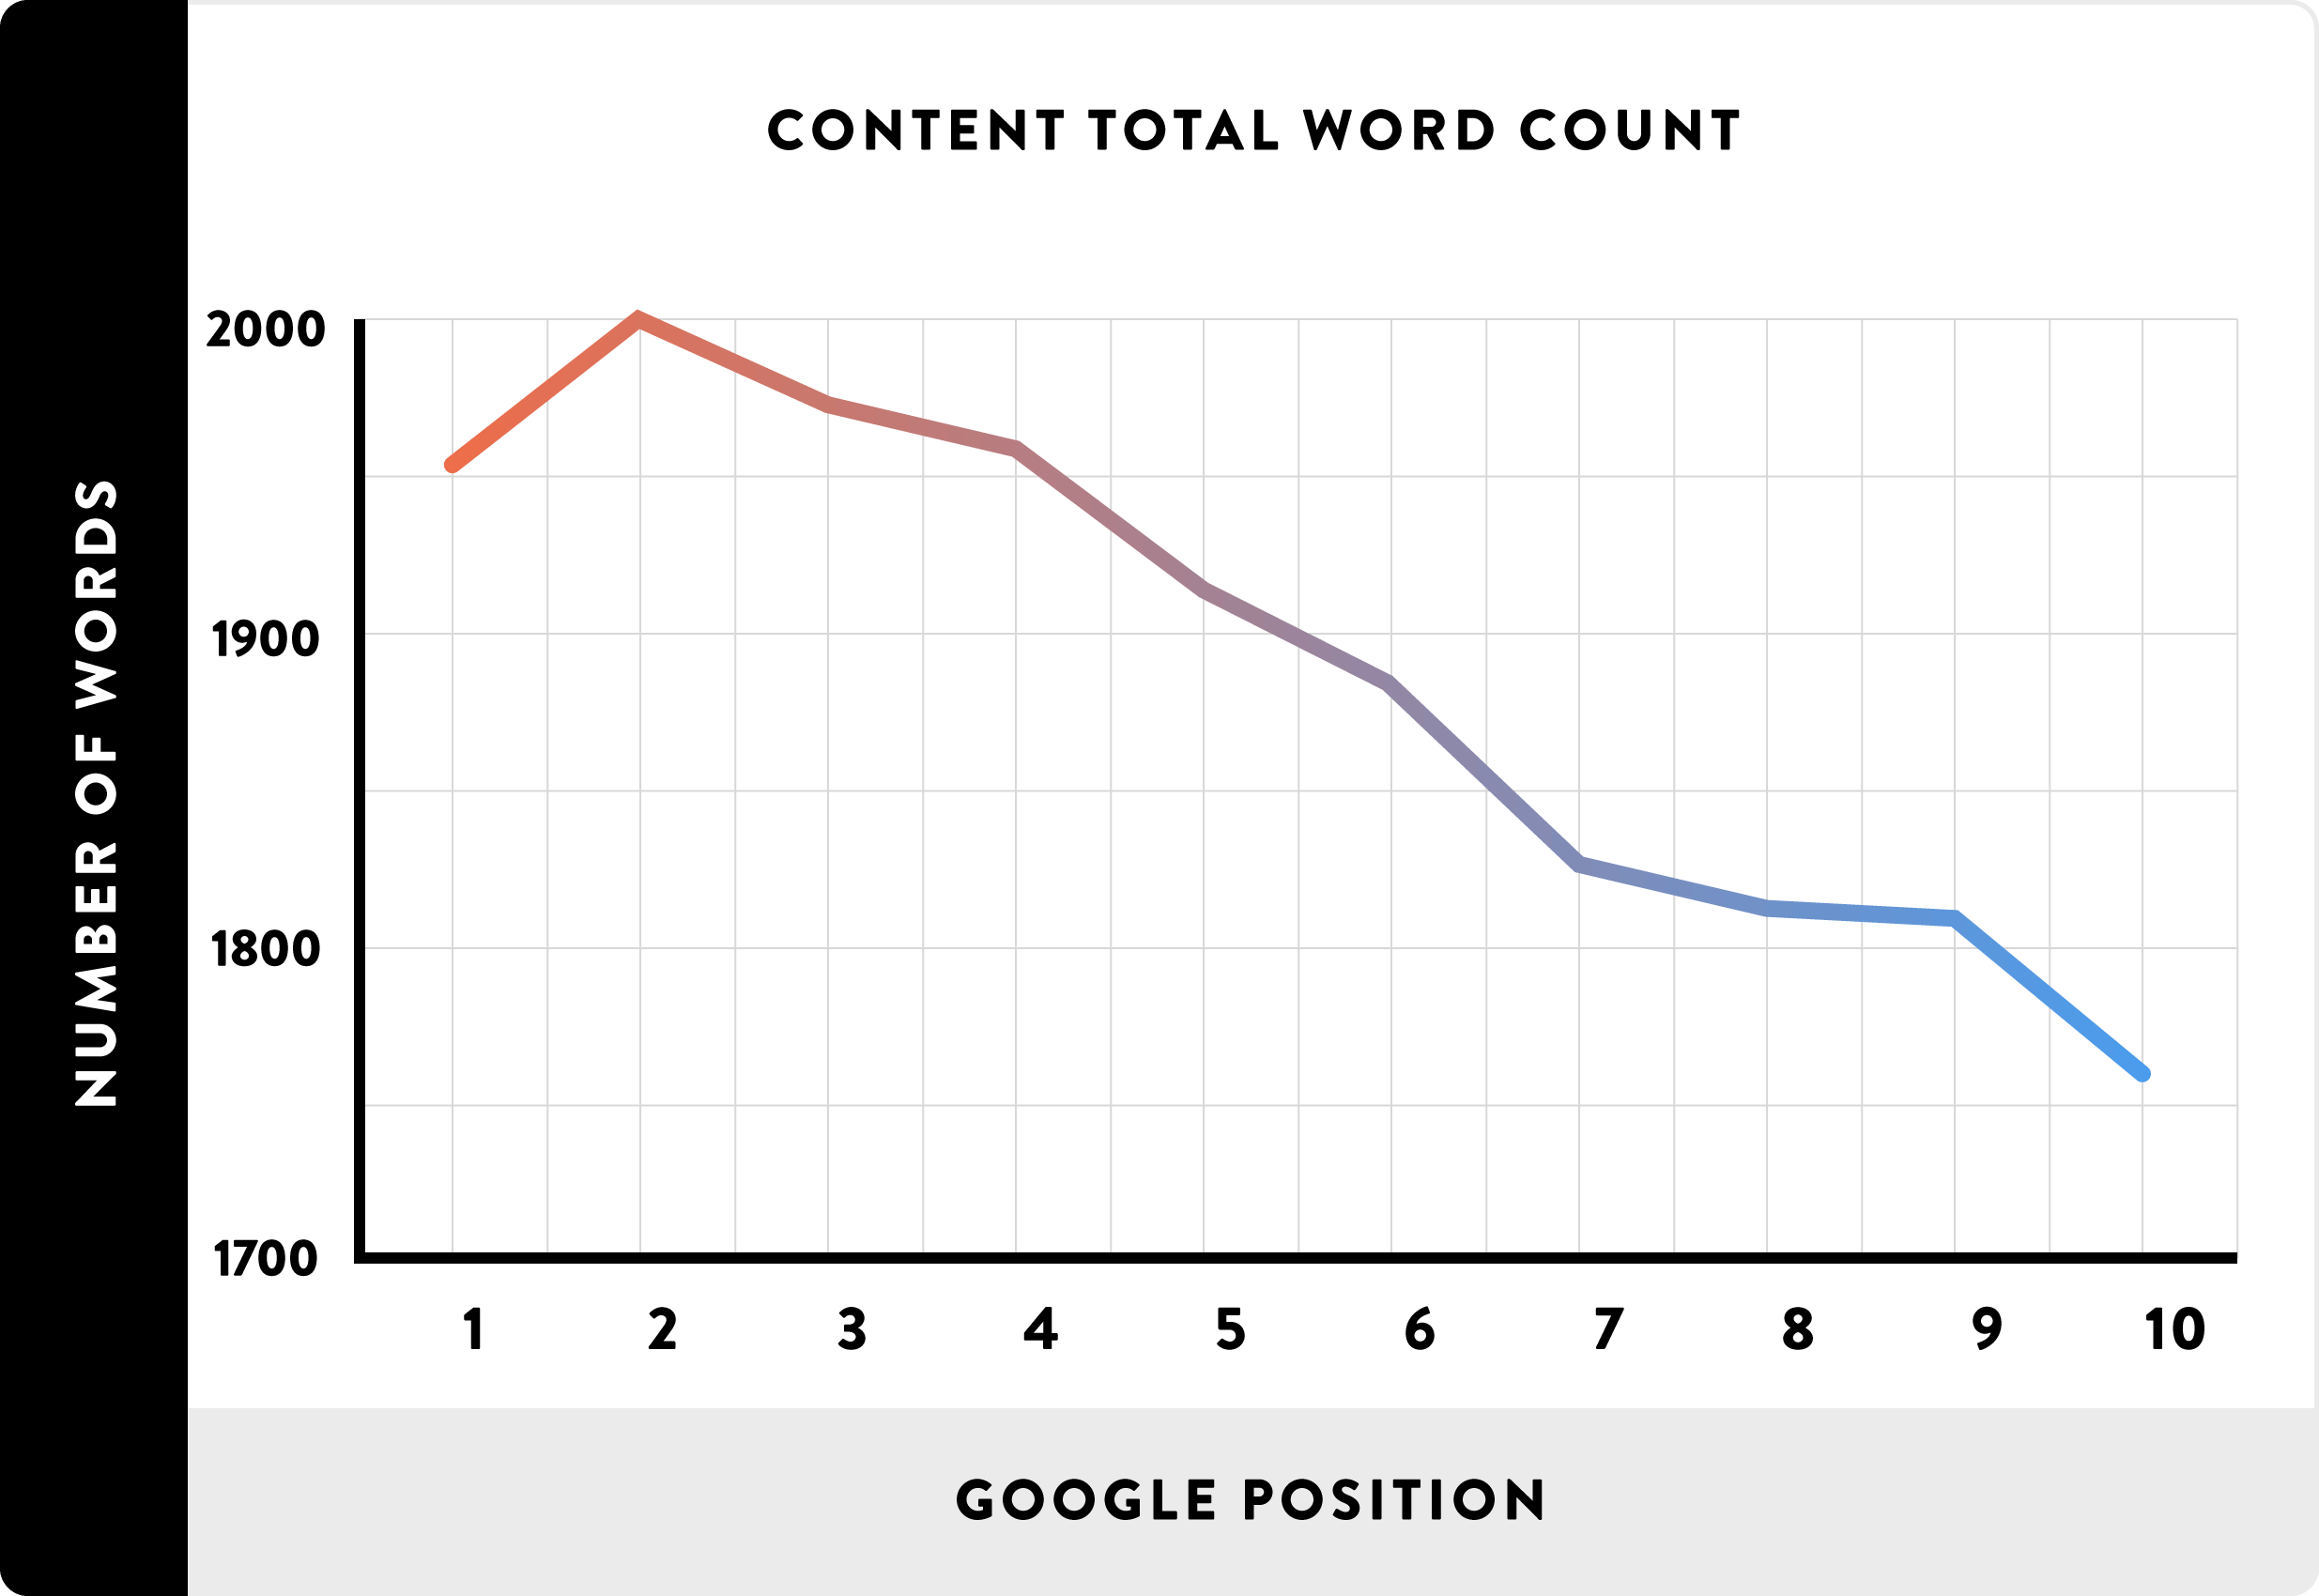 Content Word Count vs Google Position